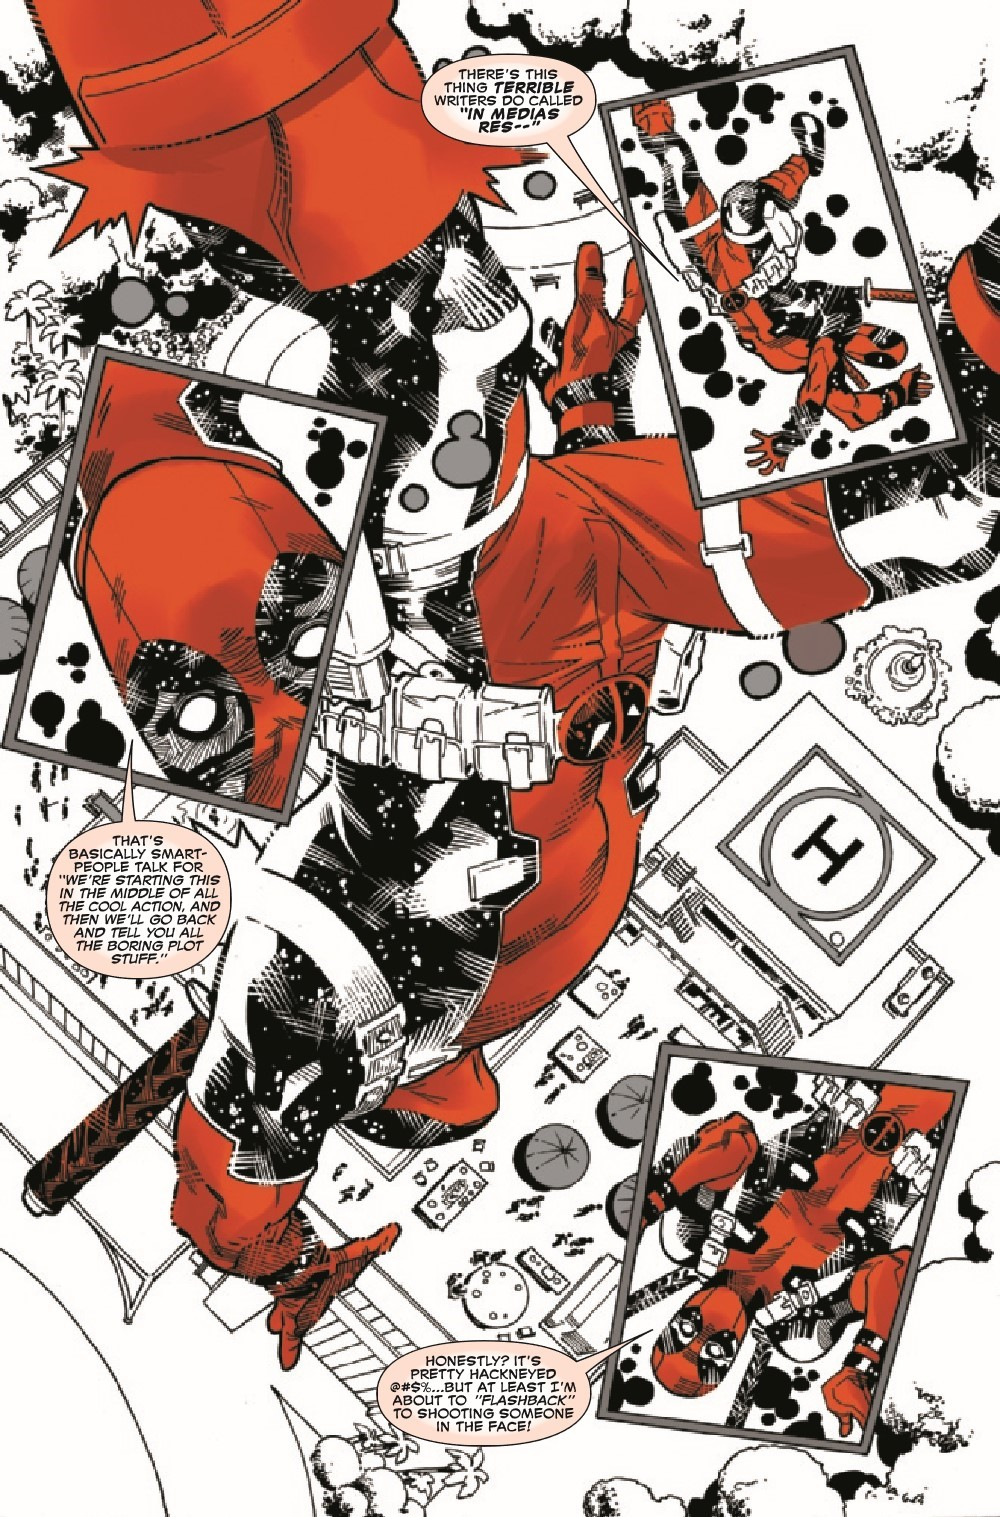 DPOOLBLKWHBL2021002_Preview-4 ComicList Previews: DEADPOOL BLACK WHITE AND BLOOD #2 (OF 4)